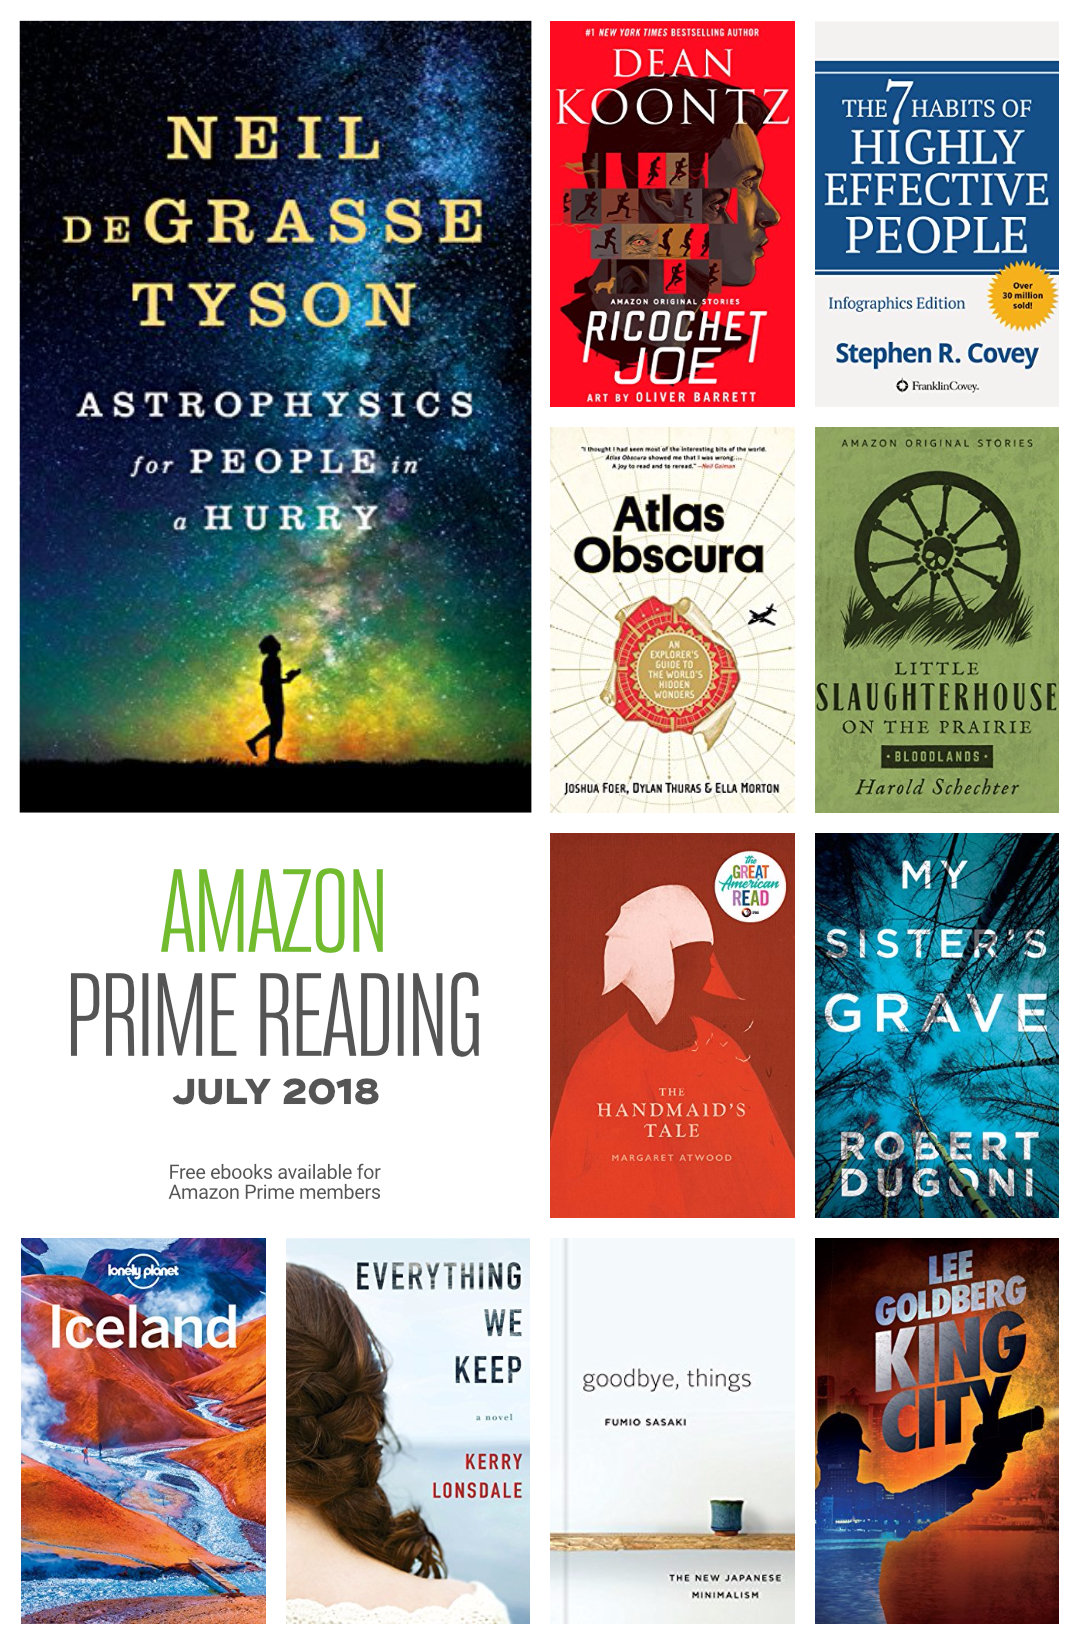 Explore the best books available in Amazon Prime Reading in July 2018